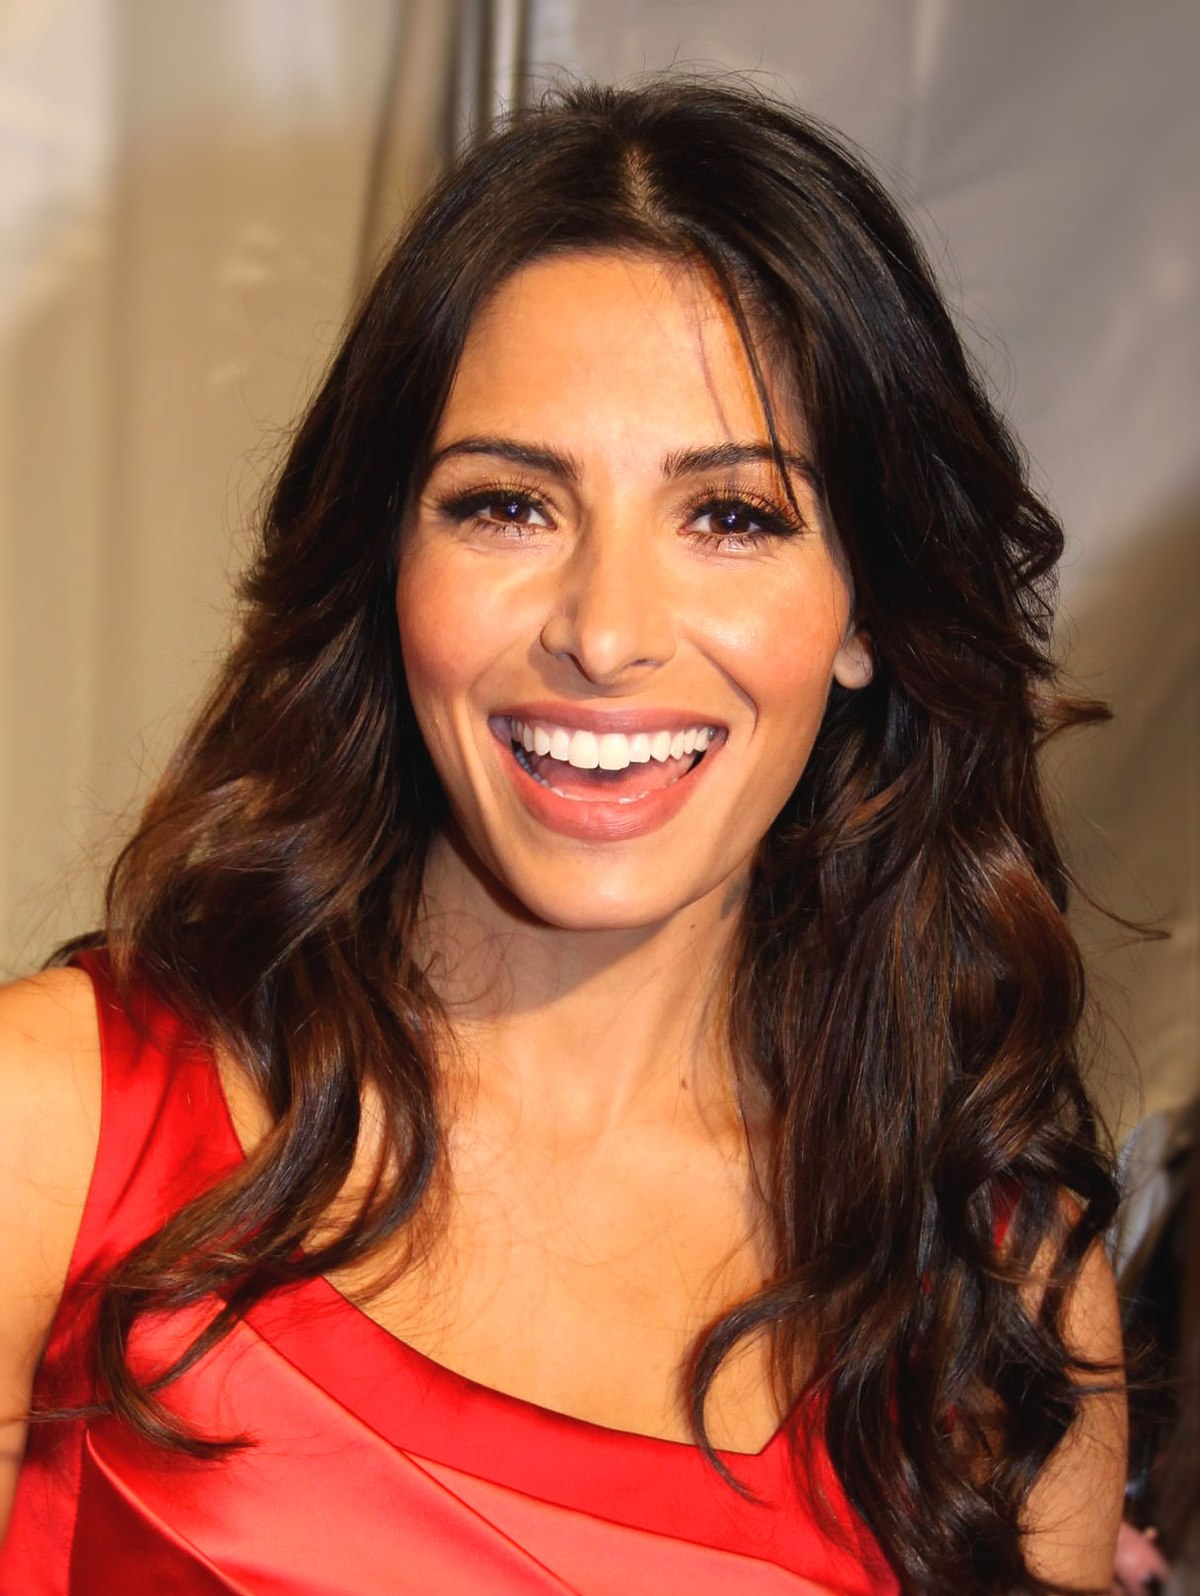 Sarah Shahi naked (66 photo), Tits, Leaked, Boobs, braless 2015